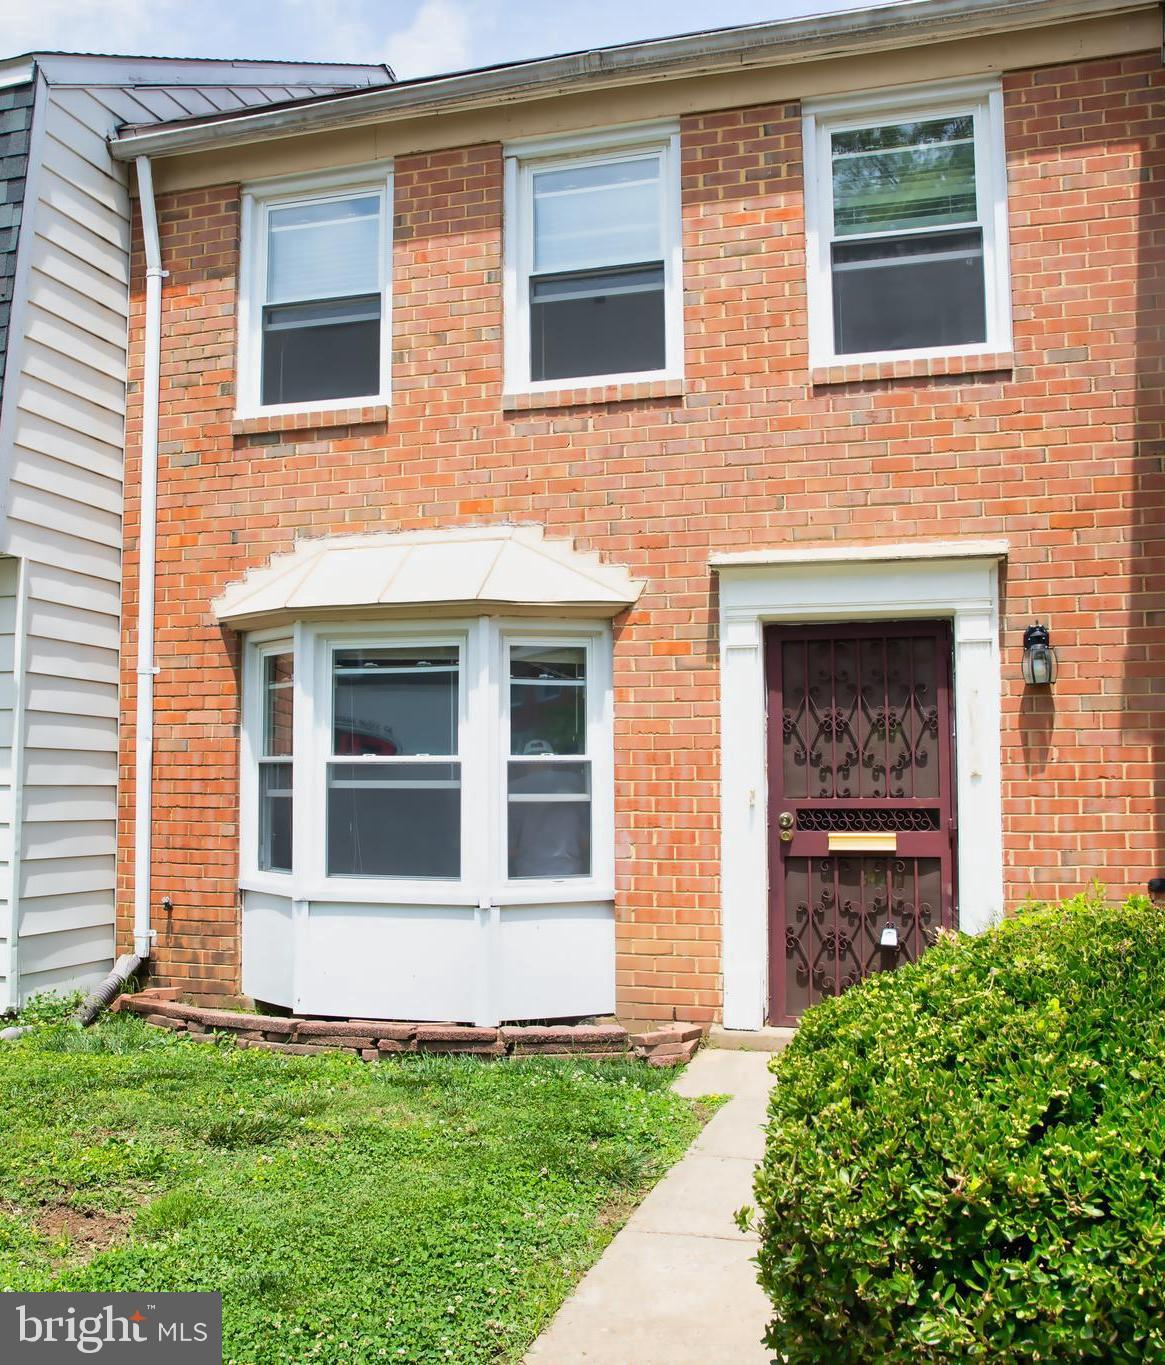 Welcome to 2242 Dawn Lane! Conveniently located in Temple Hills MD its within minutes of Washington Dc line & metro stations. With a bit of vision & TLC this makes the perfect place to call home. 3 bedrooms with private owners suite. Strictly sold as is, best value in the area! What's not to love! Run don't walk! This one won't last long!